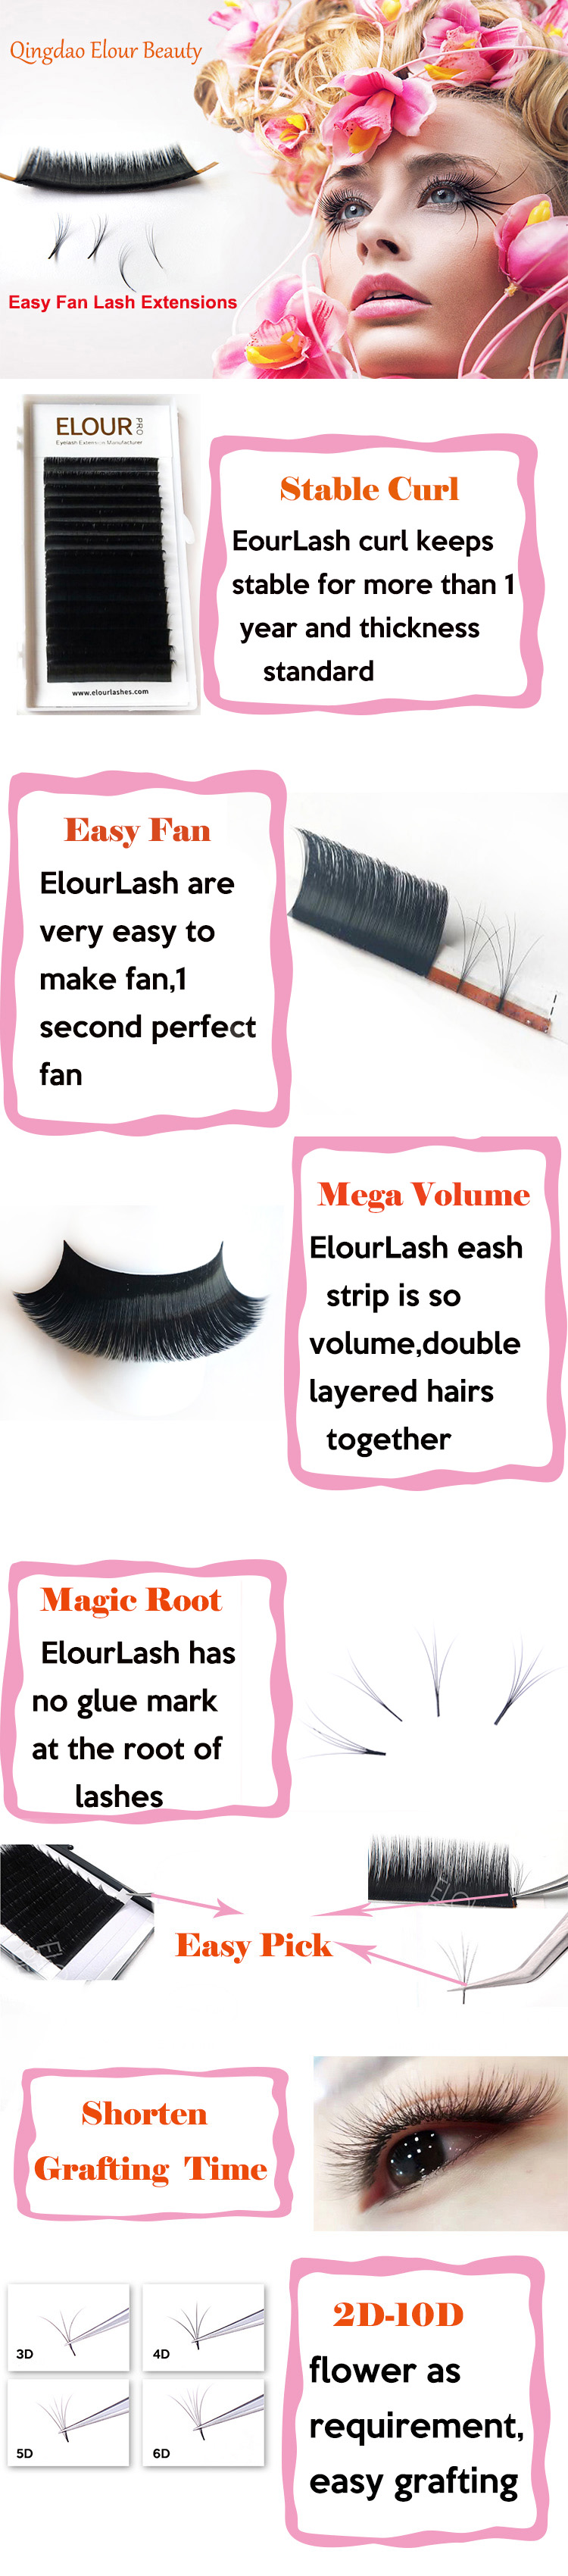 1-second-volume-fans-lash-extensions-wholesale-supplies.jpg